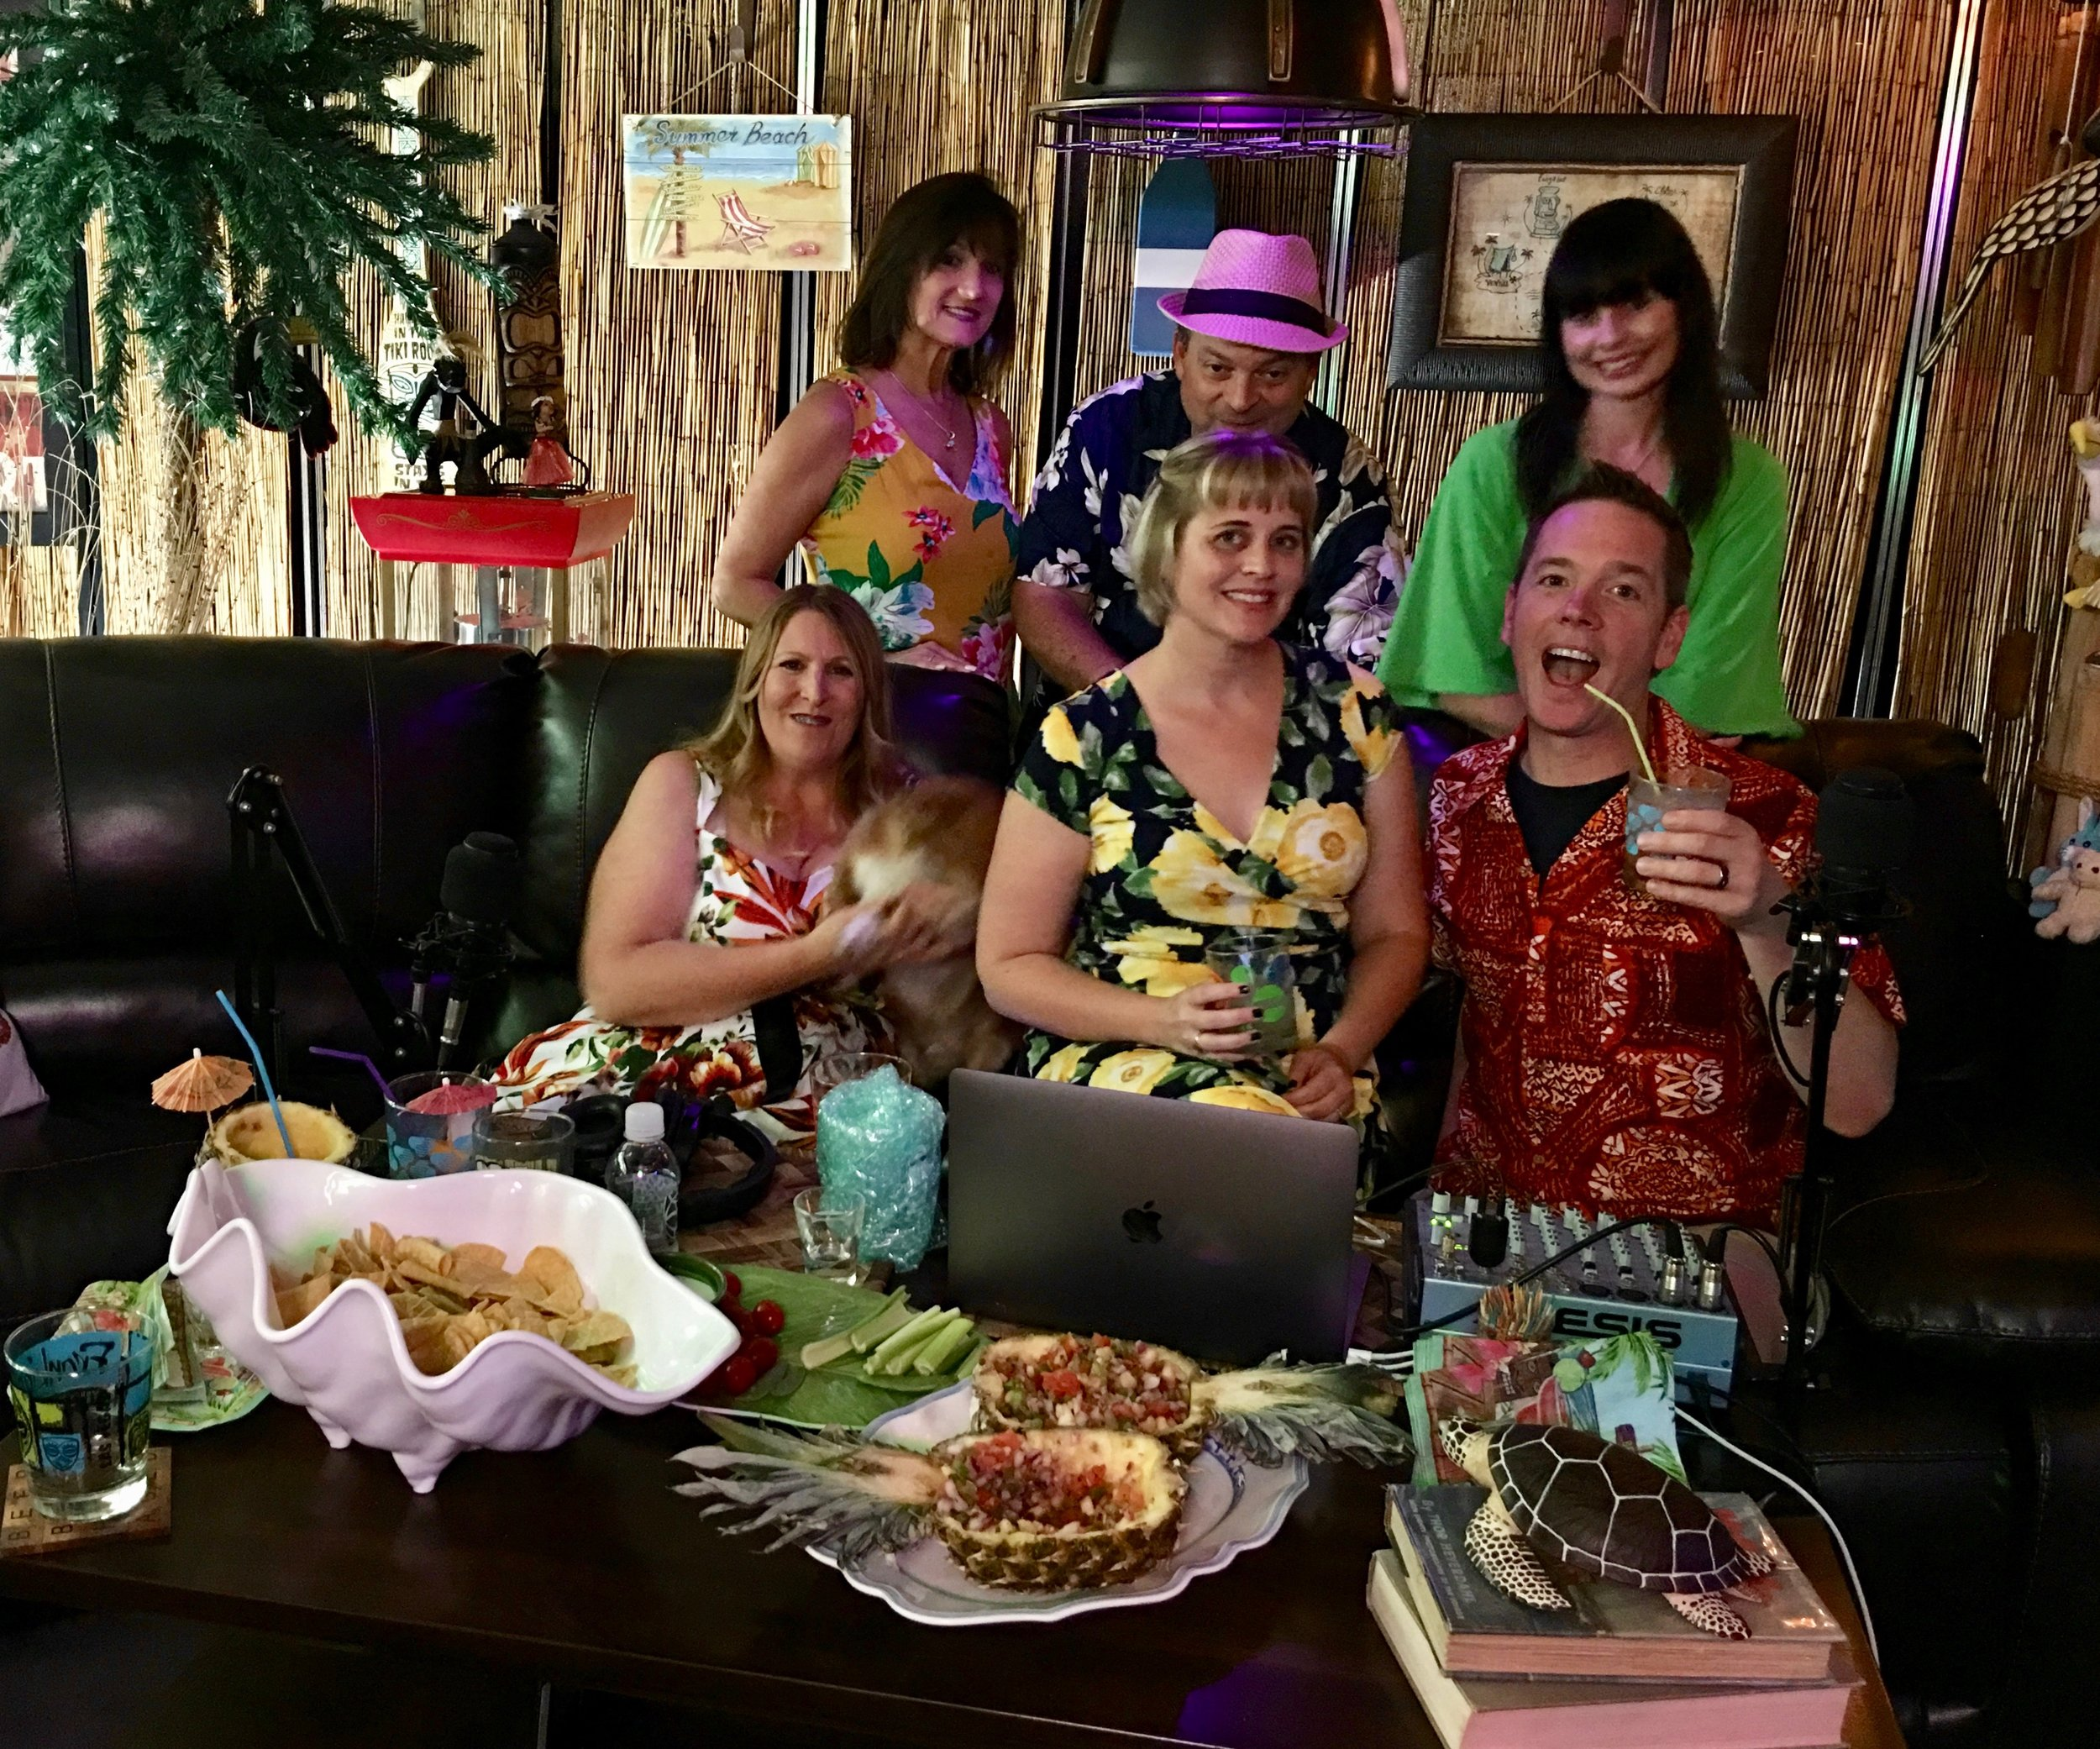 From left to right top: Vicki, Jeff, Pumpkin, Kalani, Starshine and Sunshine at the Taki Tiki